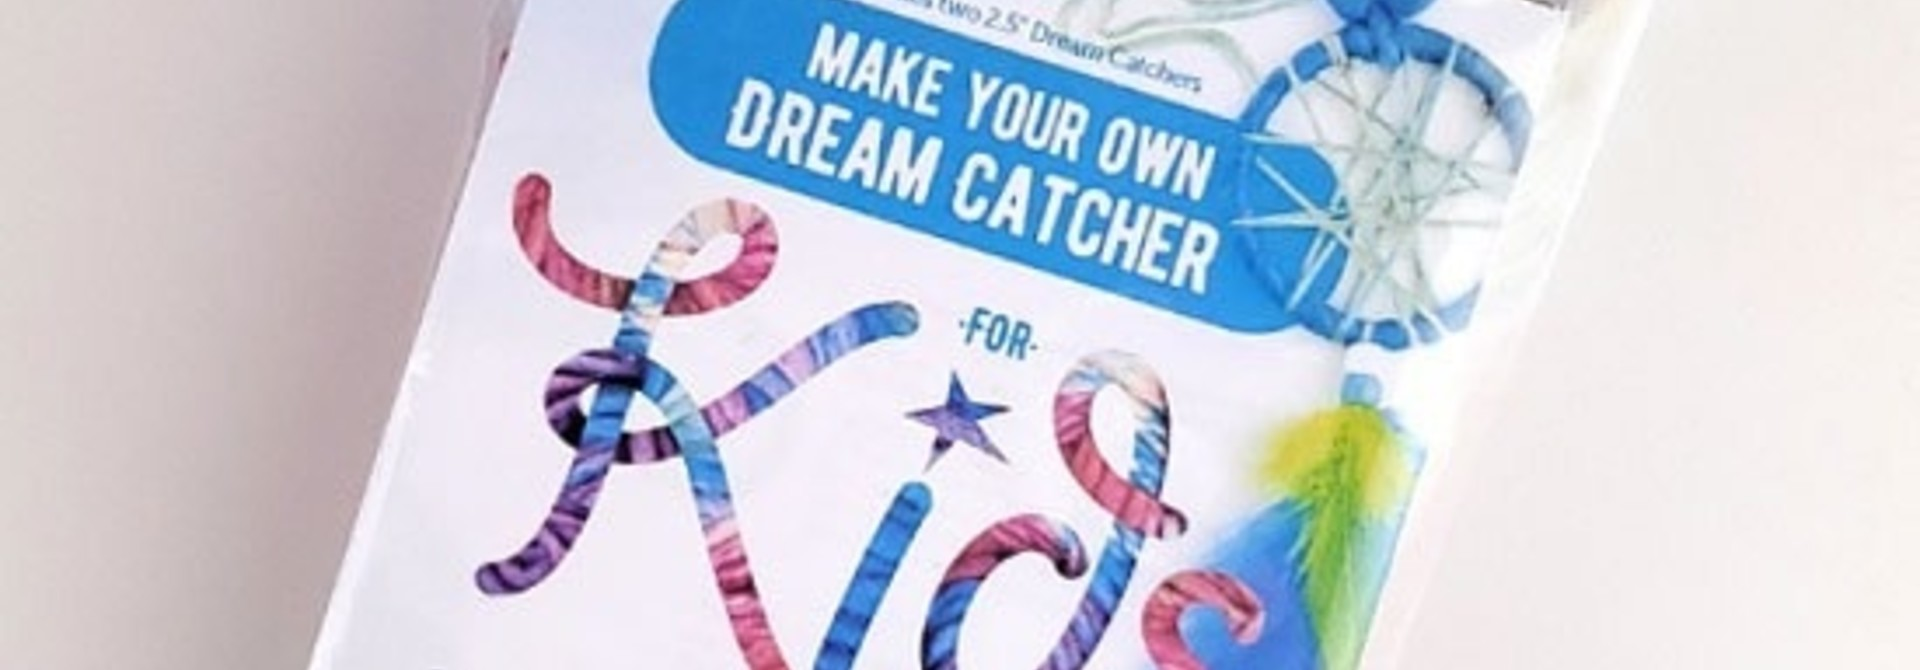 Kids Make your own dream catcher-Natural